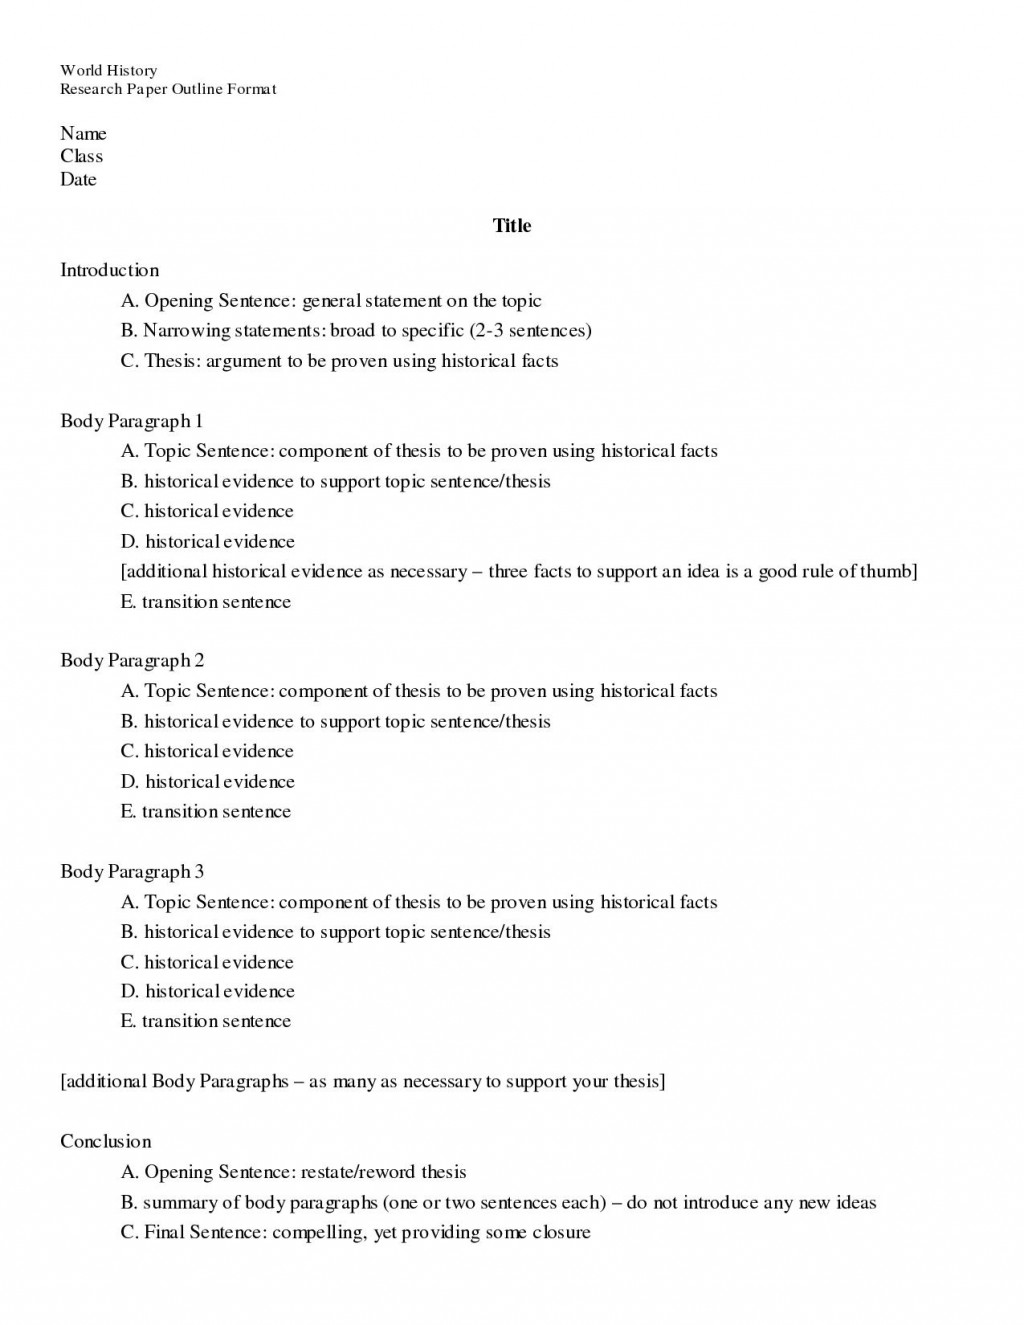 024 Outline Image1 Format Research Formidable Paper Apa Example Sample Analytical Outlines Large